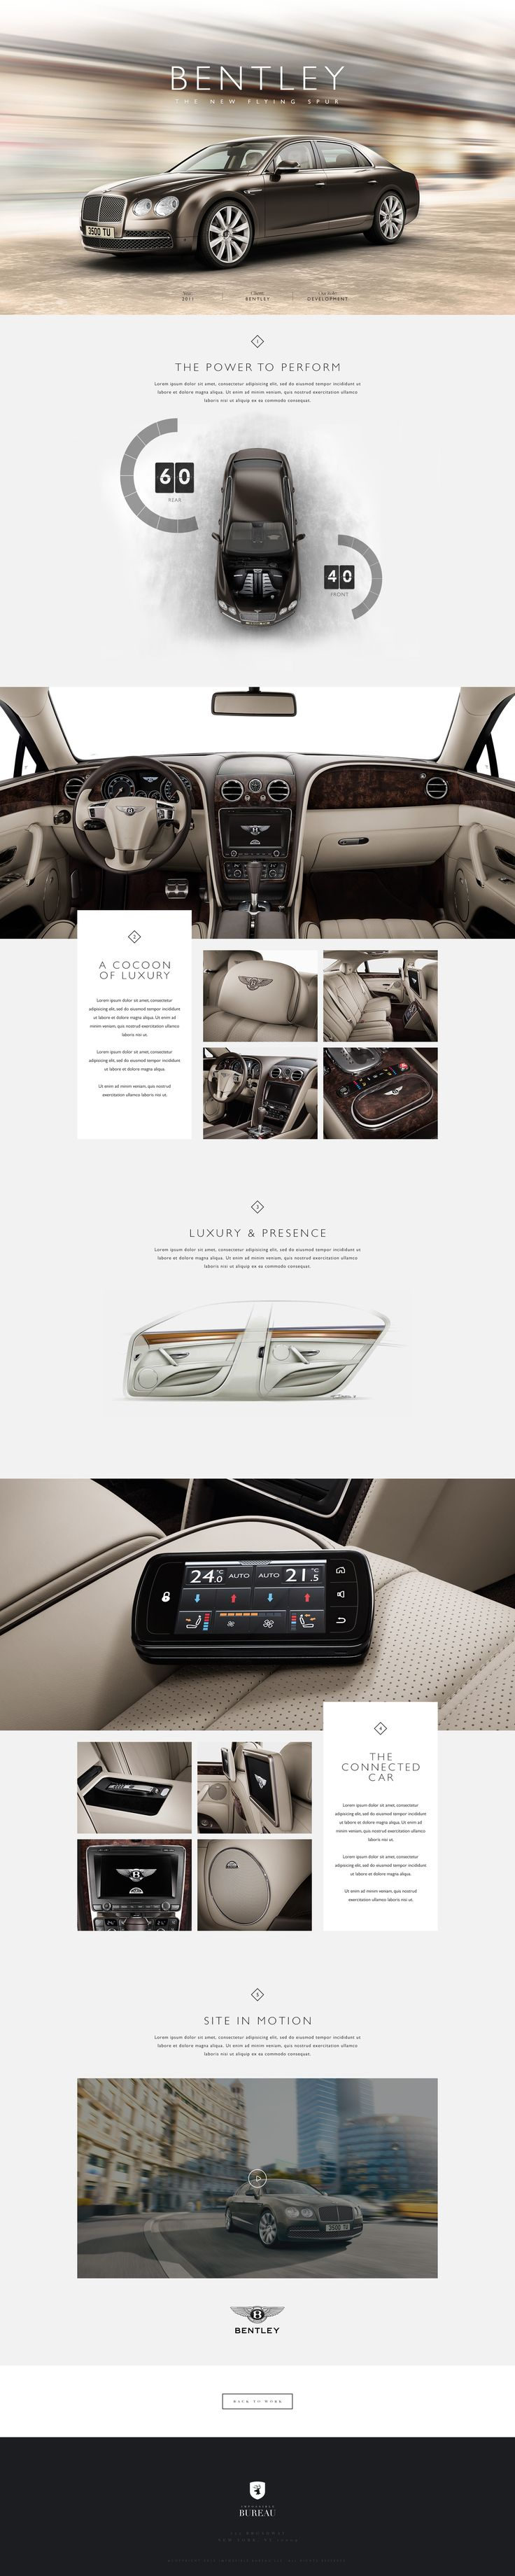 { GoLayerCake.com } Bentley The New Flying Spur. Some nice UI design. sophisticated, yet edgy